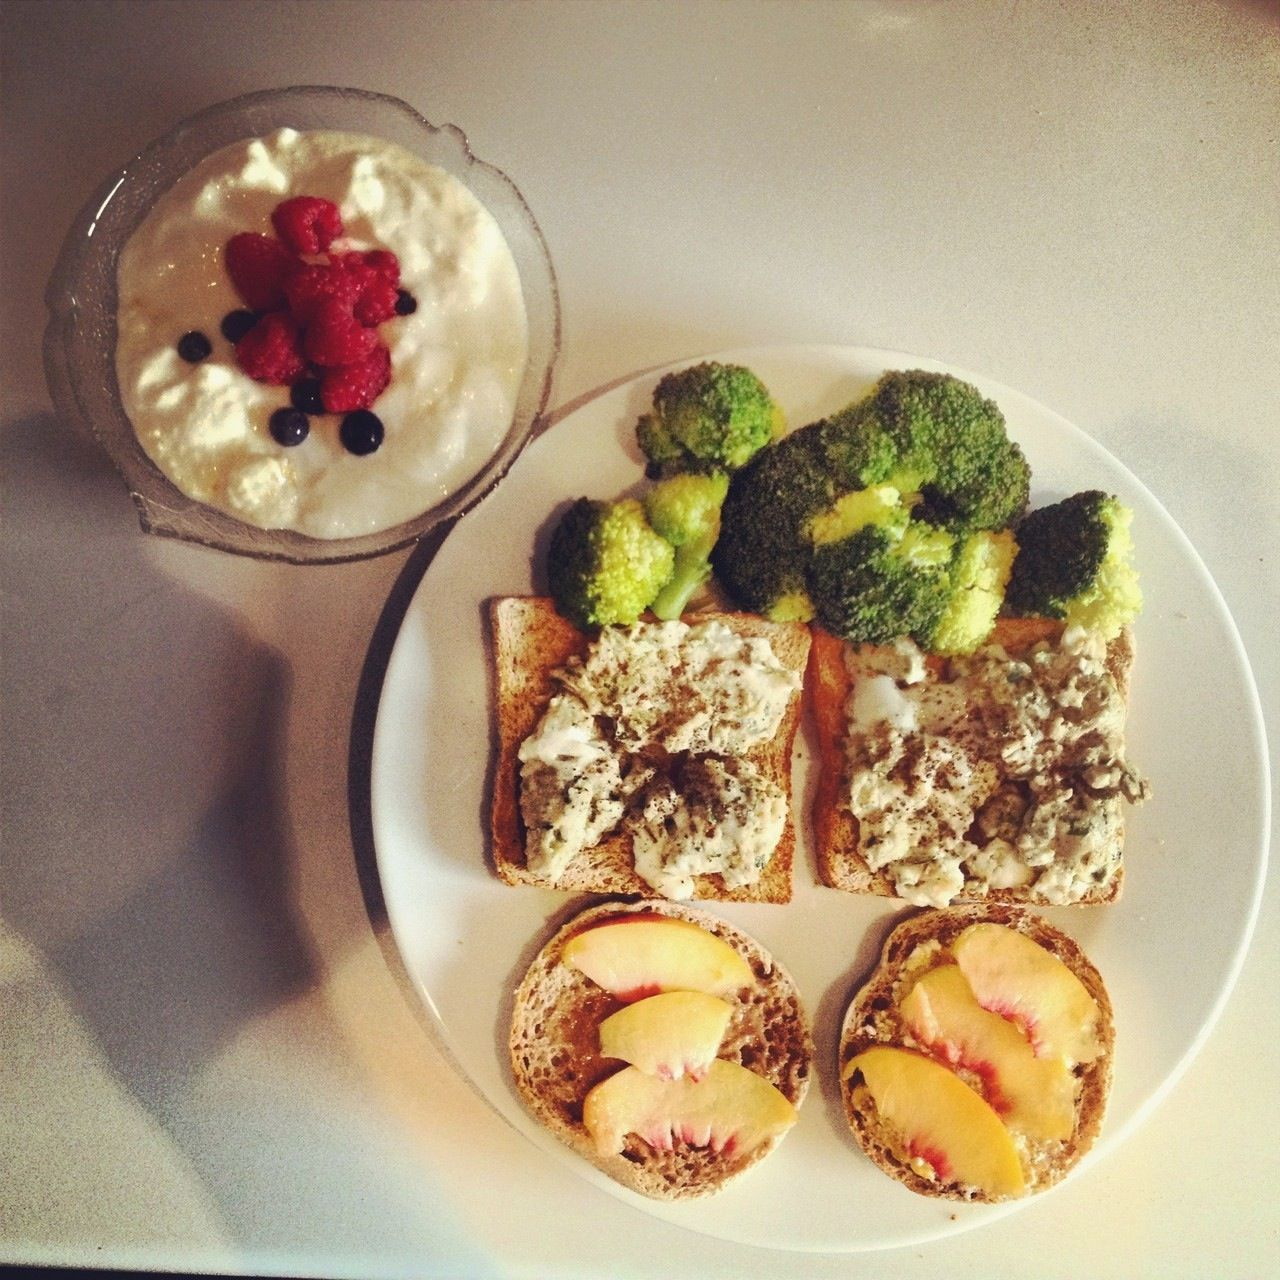 2 Perfect Scrambled Eggs On Whole Wheat Toasts With Broccoli One Toast Cottage